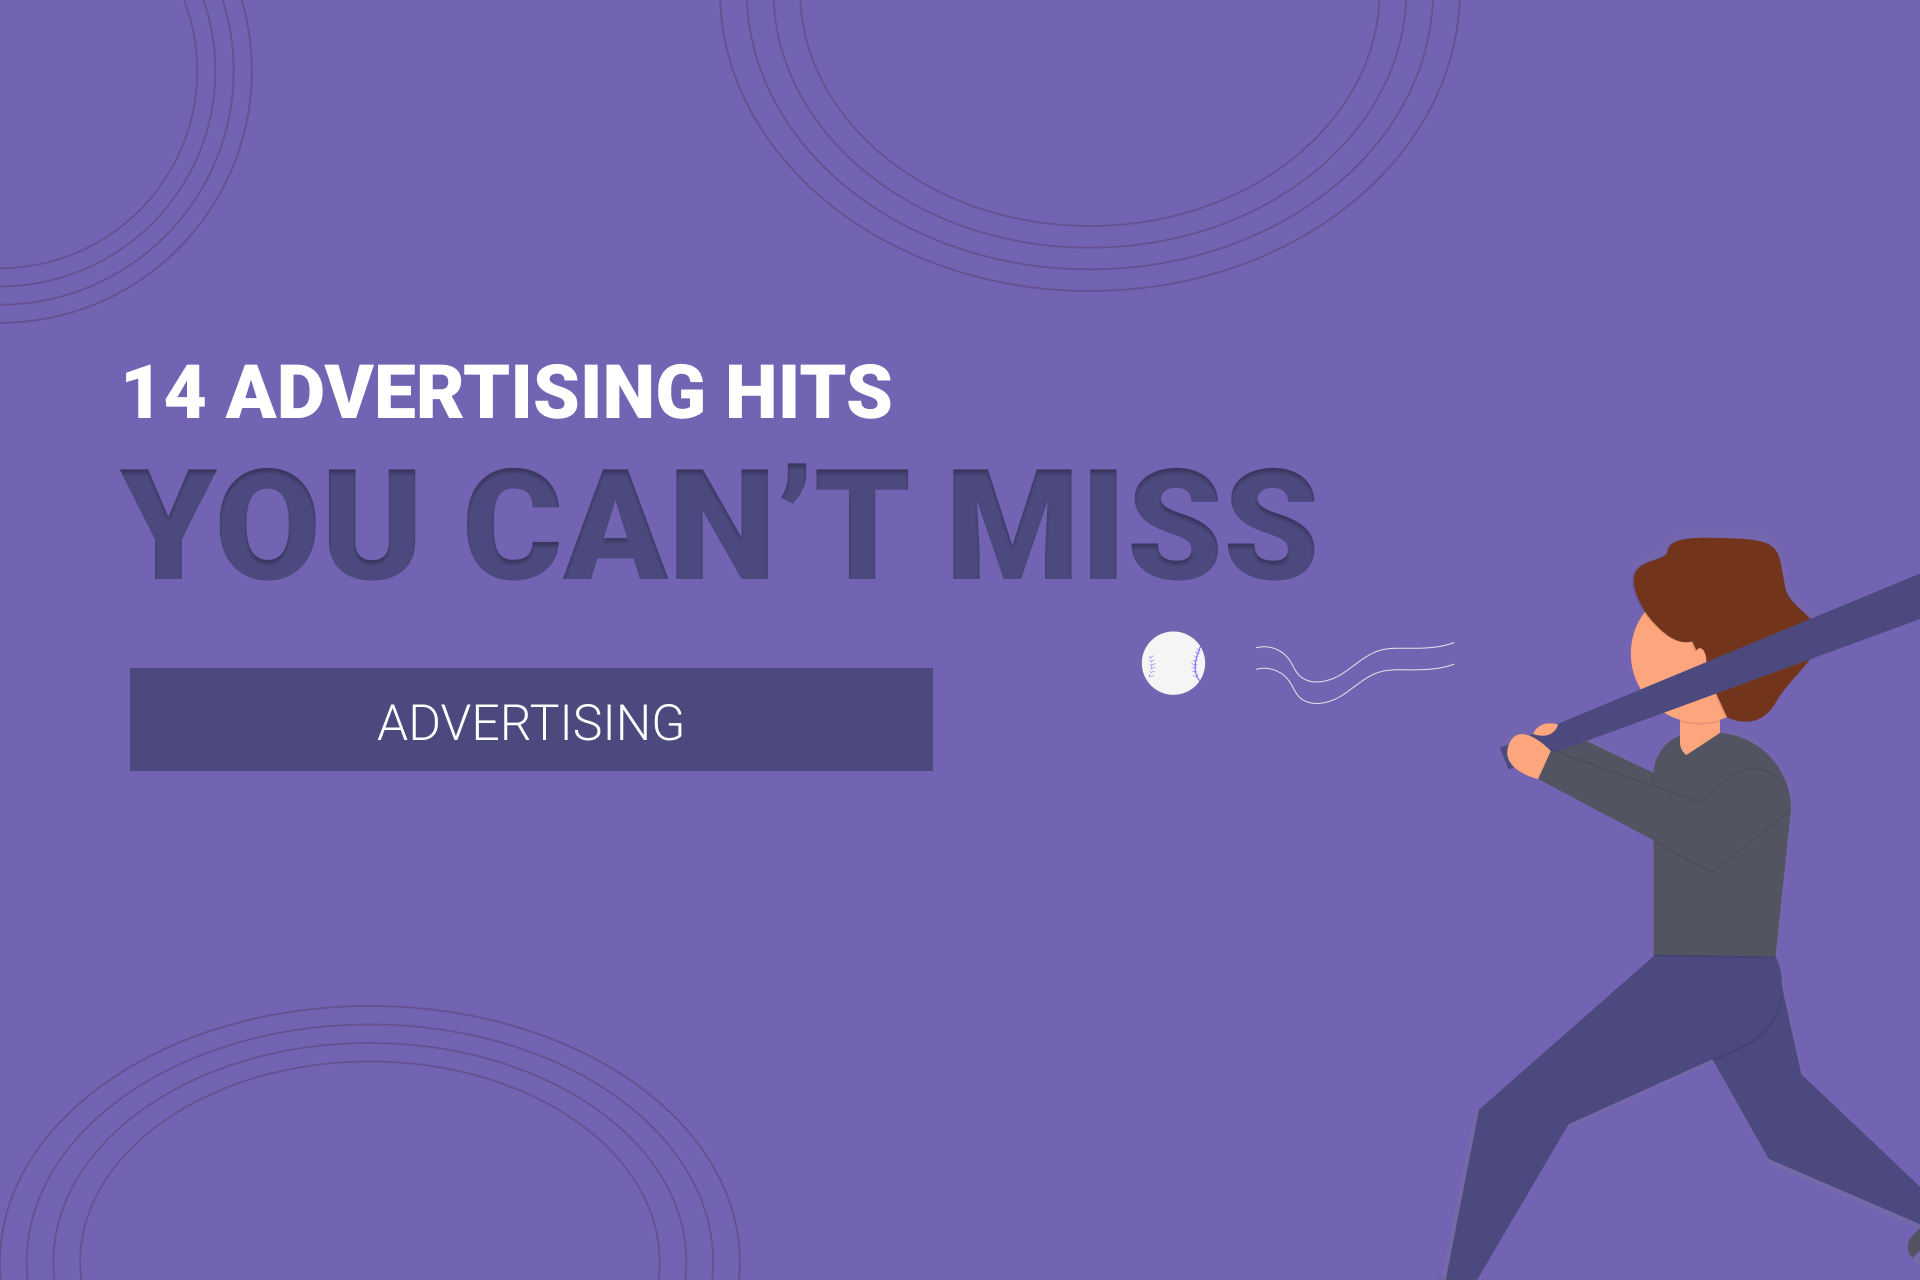 14 Advertising Hits You Can't Miss!